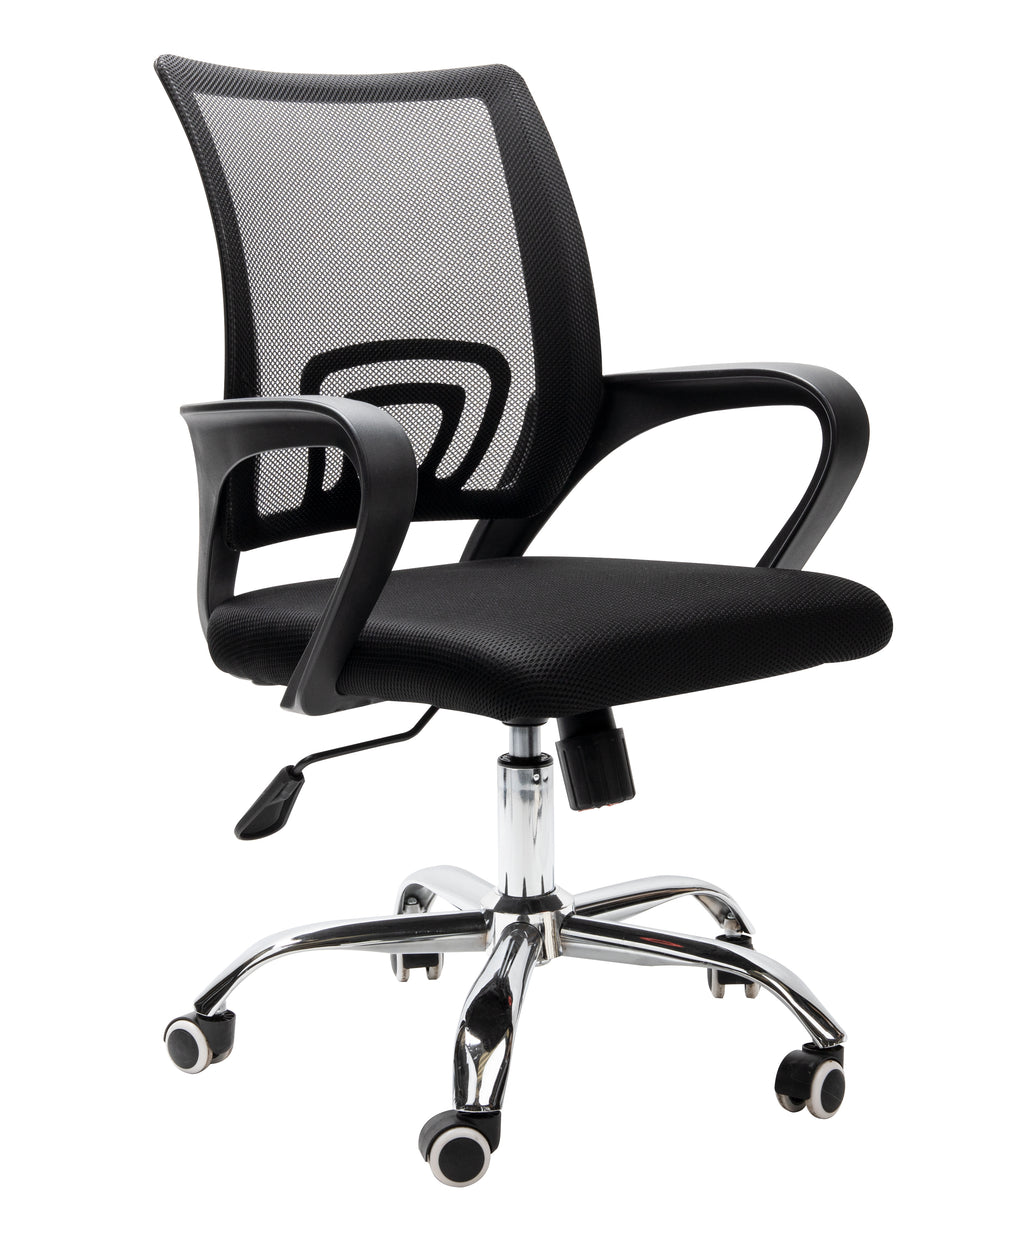 Mind Reader Ergonomic Adjustable Rolling Office Chair, Black